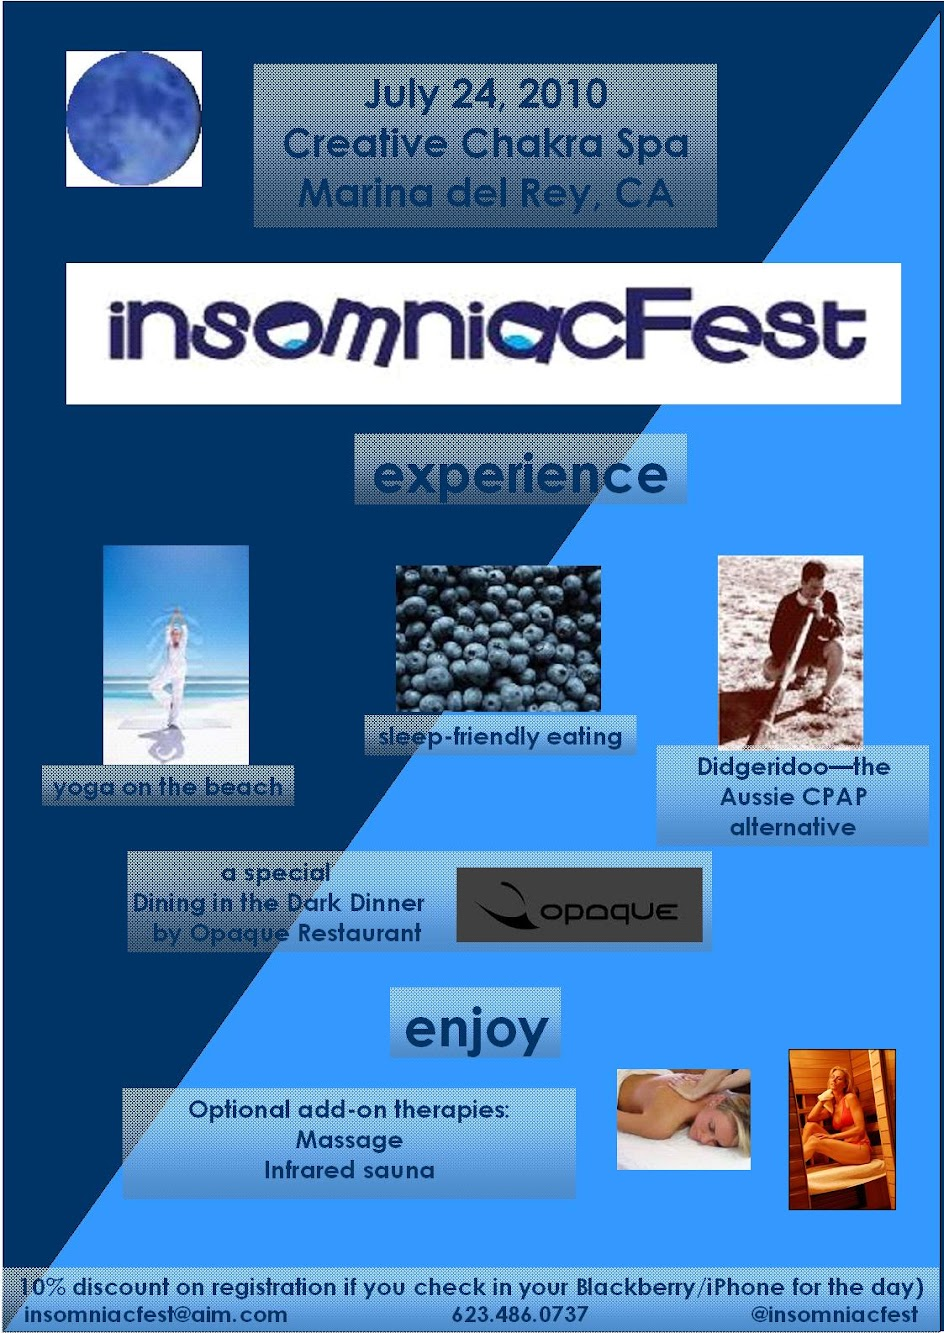 Insomniacs unite! We've got a great event for you in Marina del Rey on July 24